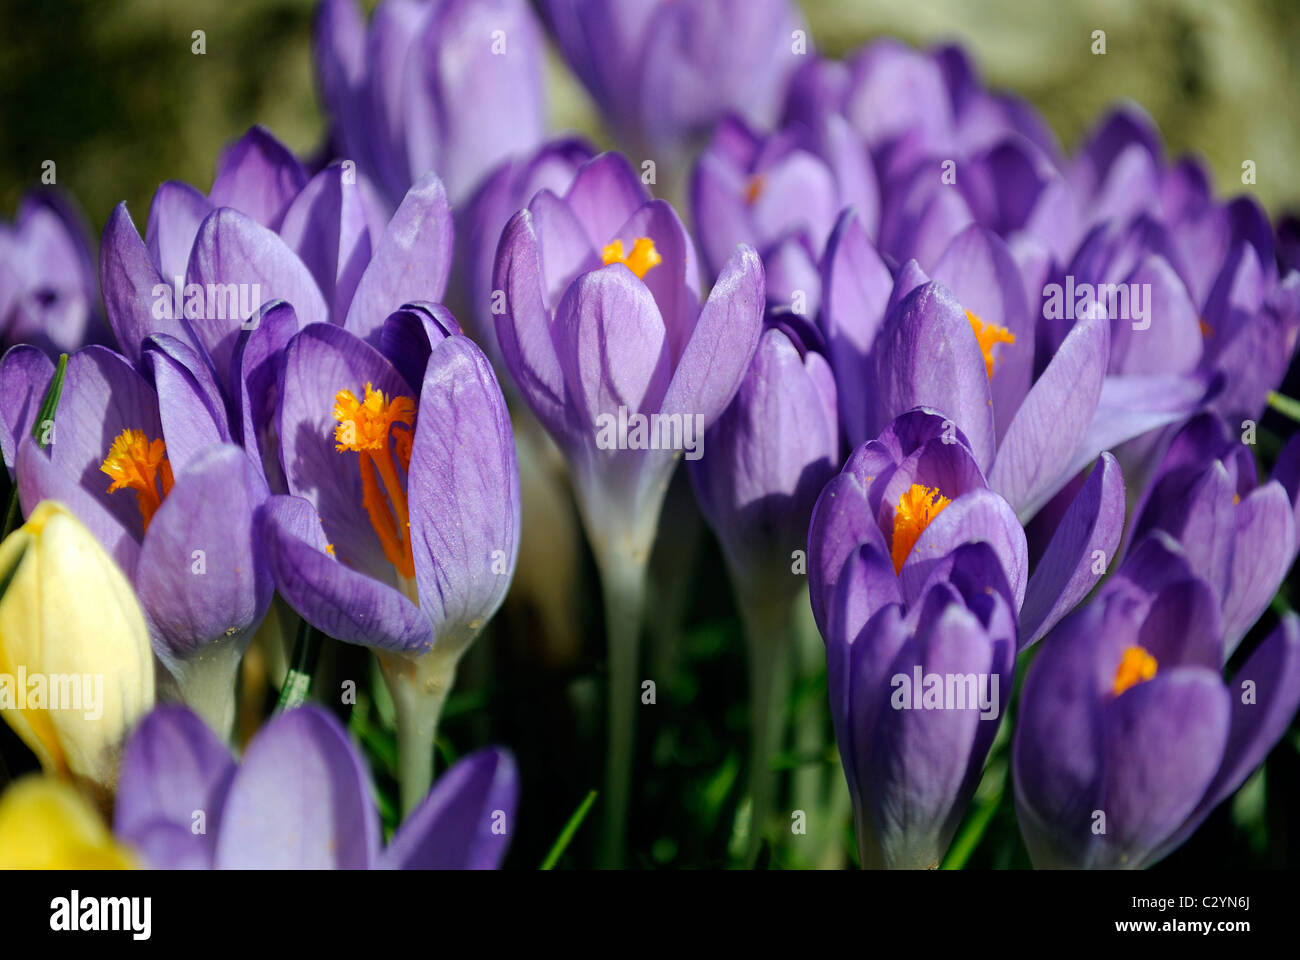 Close up of Crocuses in early spring. - Stock Image